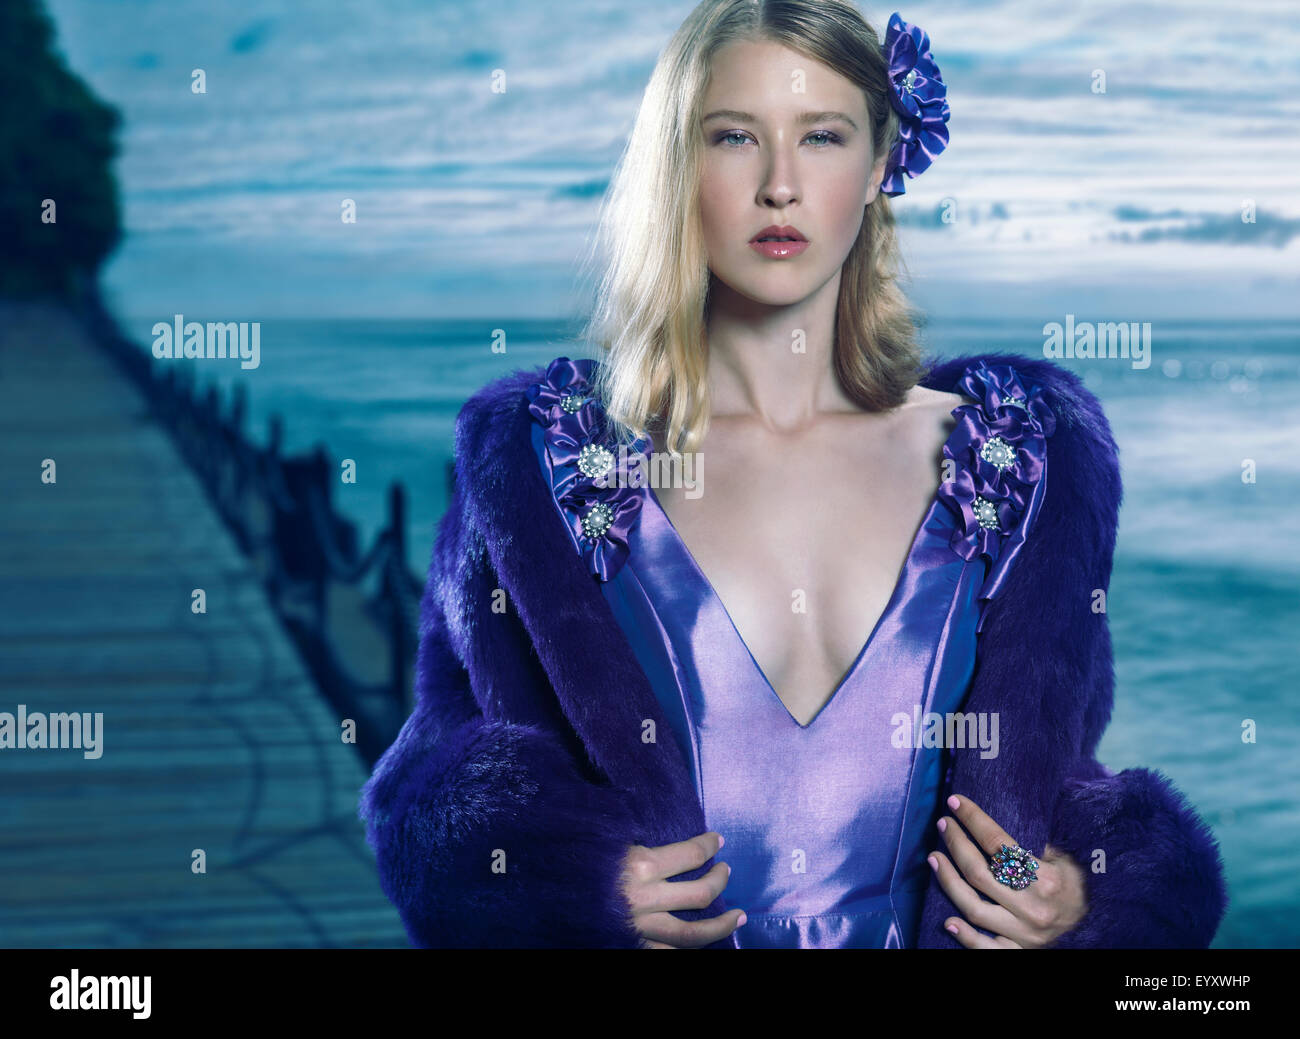 Beauty portrait of a young beautiful blond woman wearing a blue evening dress and a fur jacket outdoors at waterfront - Stock Image